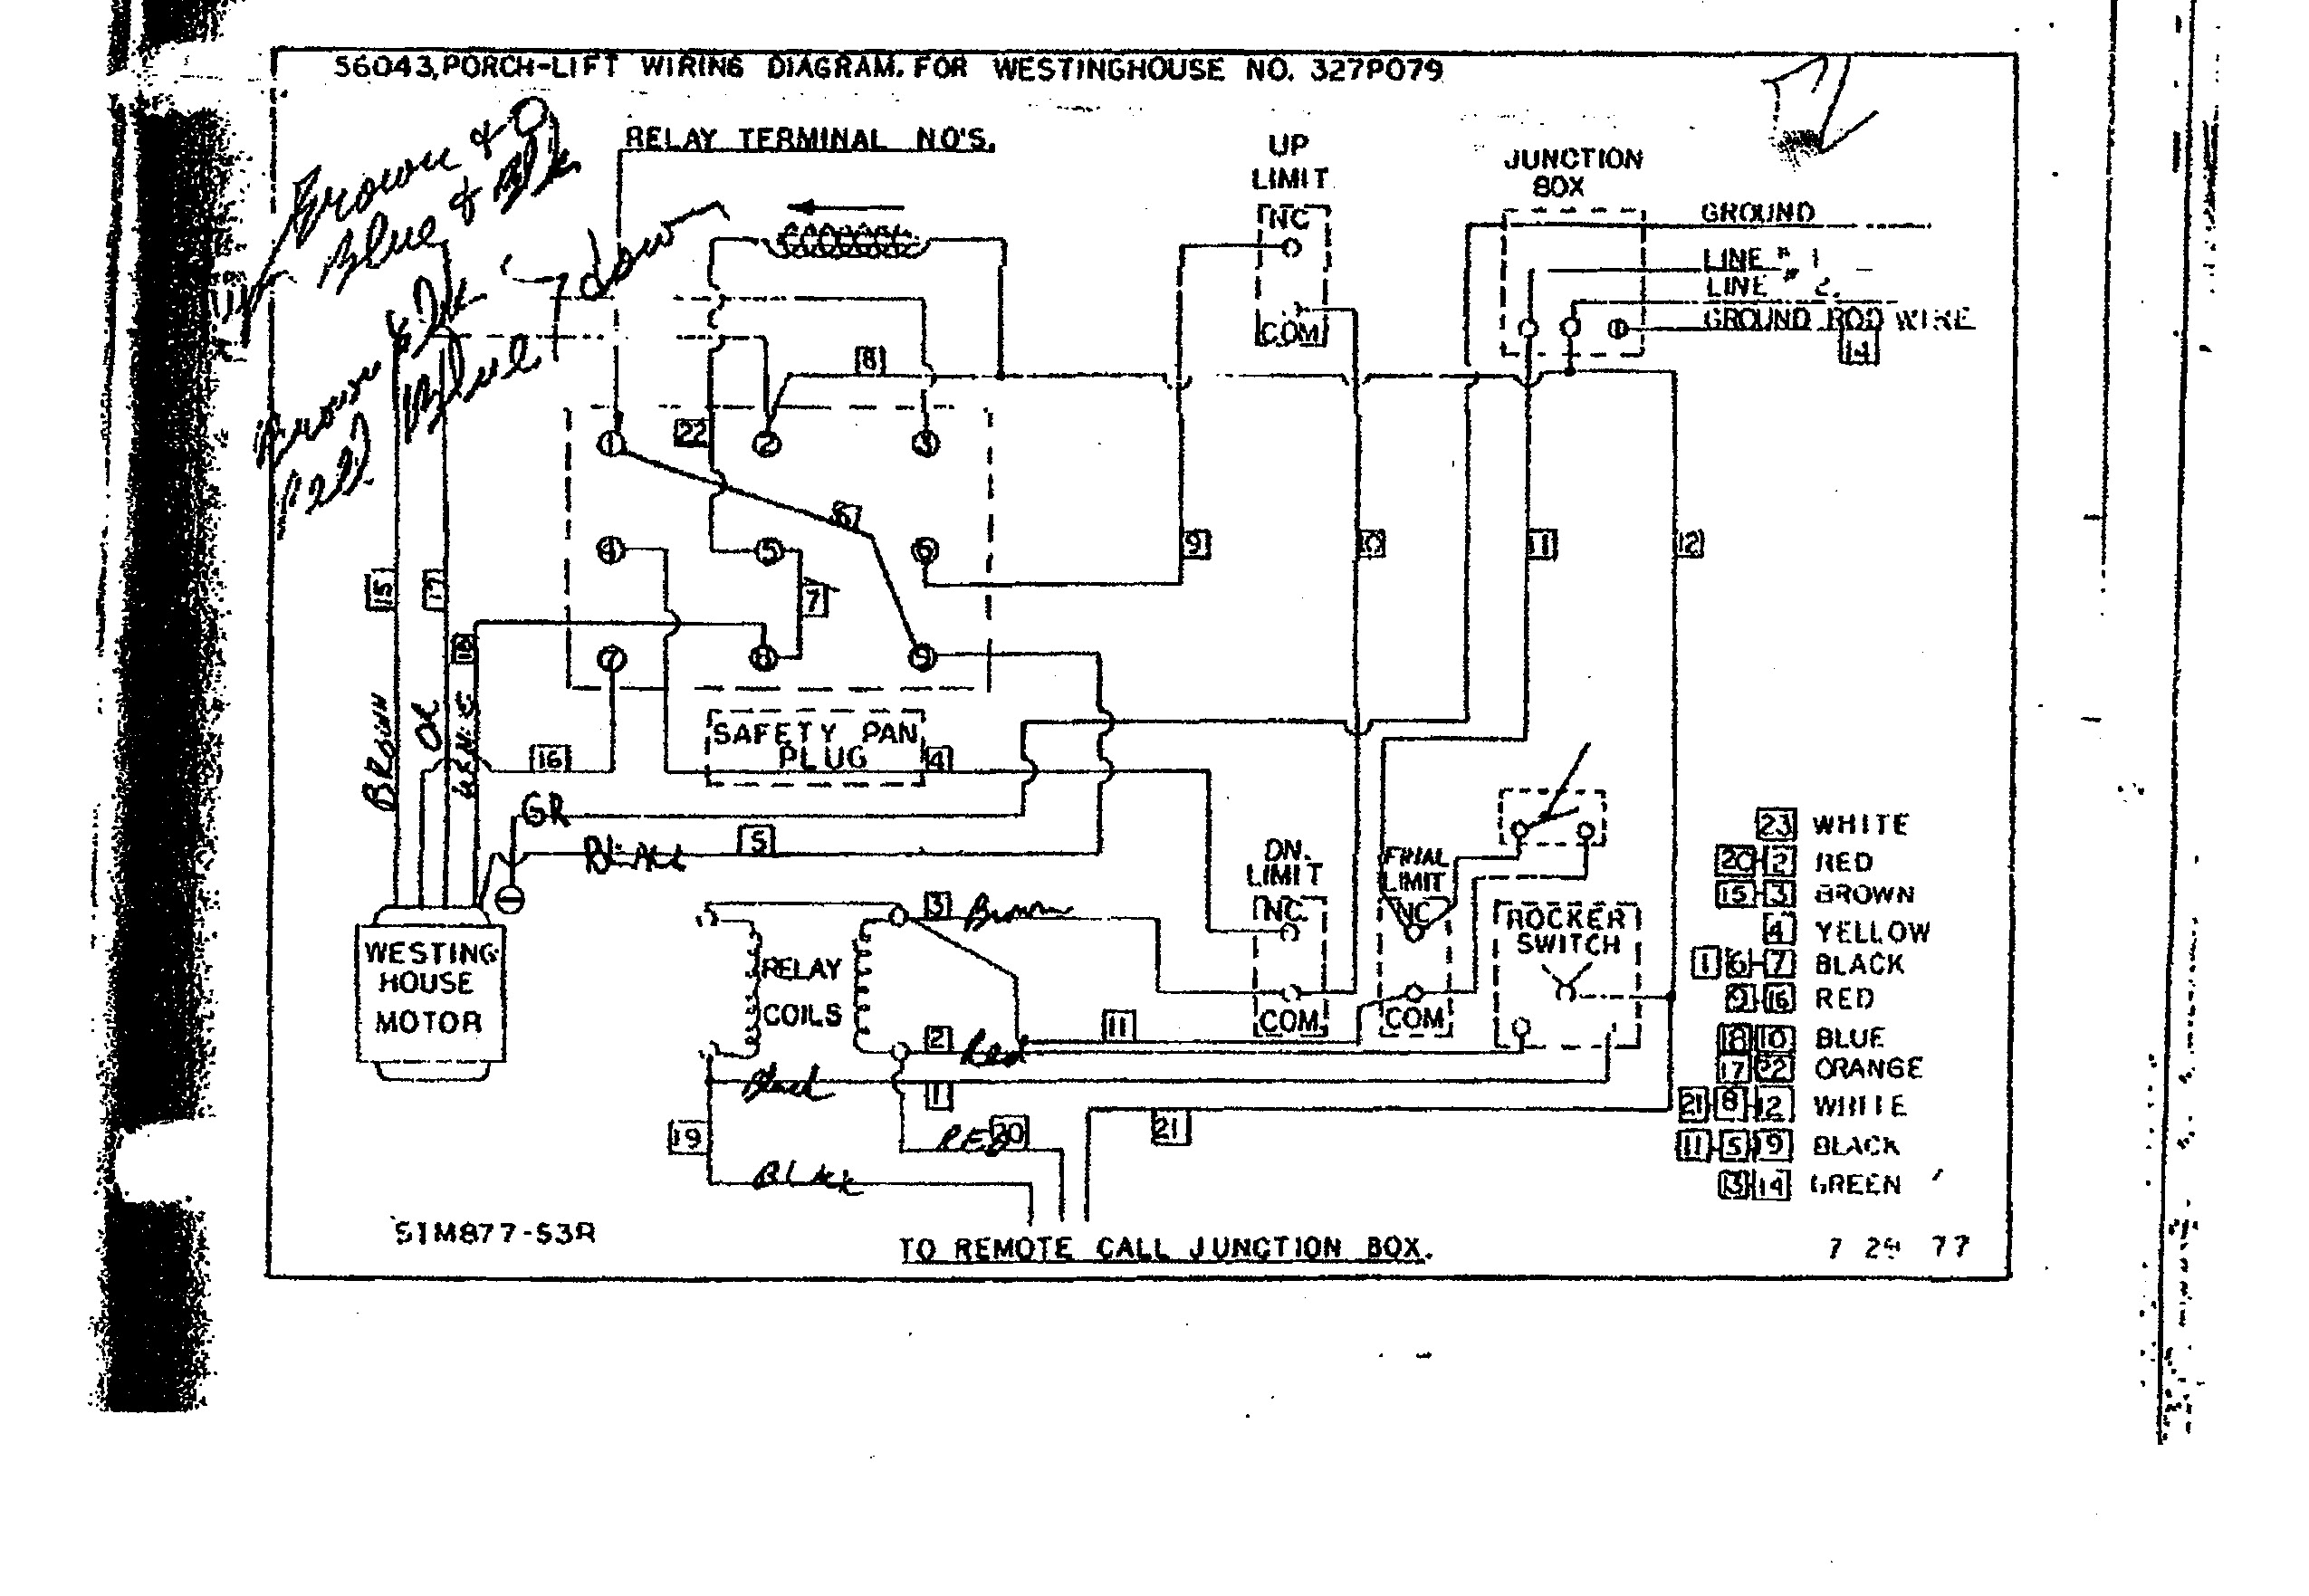 who    where can i get help with westinghouse motor wiring